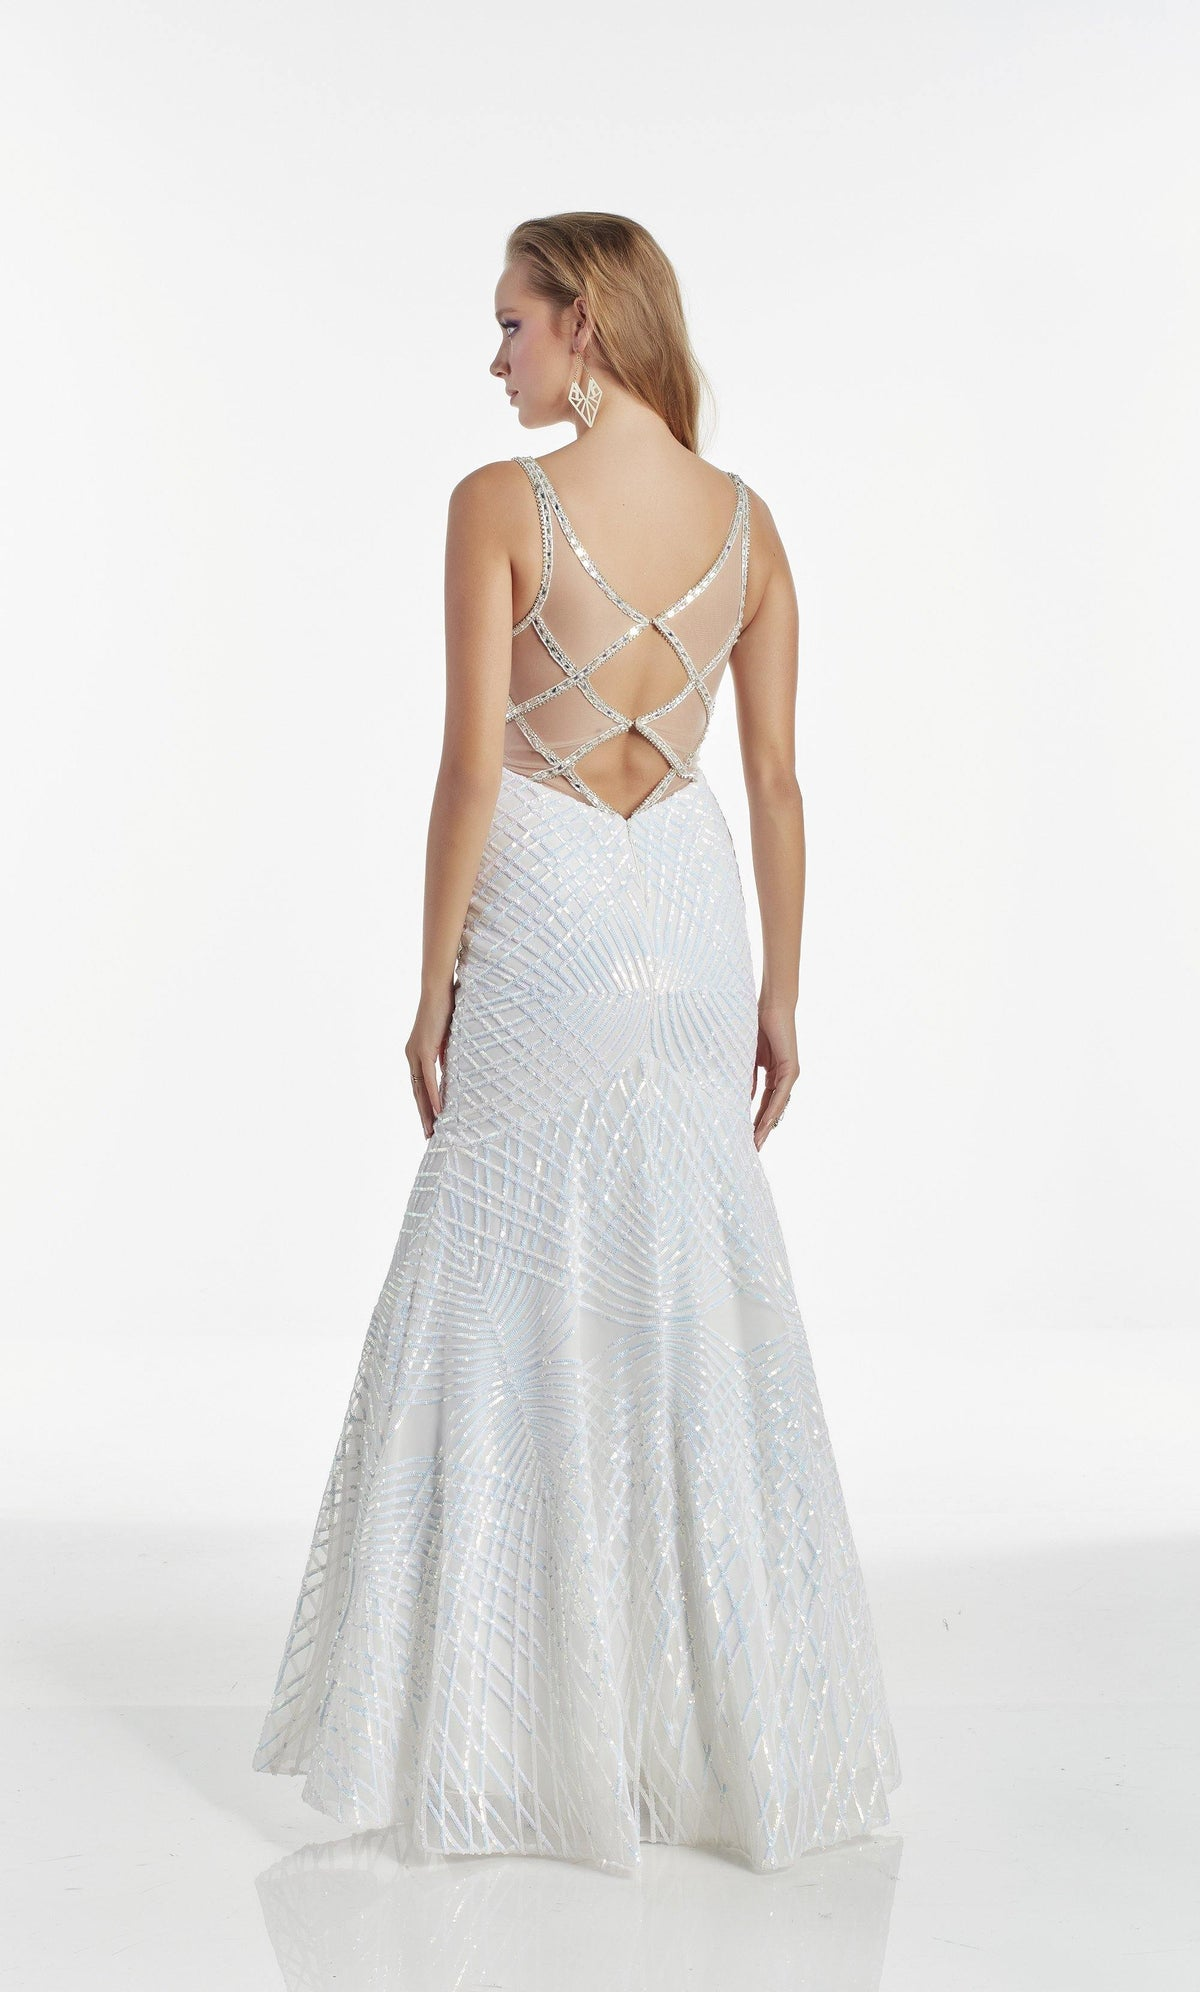 White Opal mermaid pageant dress featuring a keyhole back and fully embellished with iridescent sequins, beads, and stones